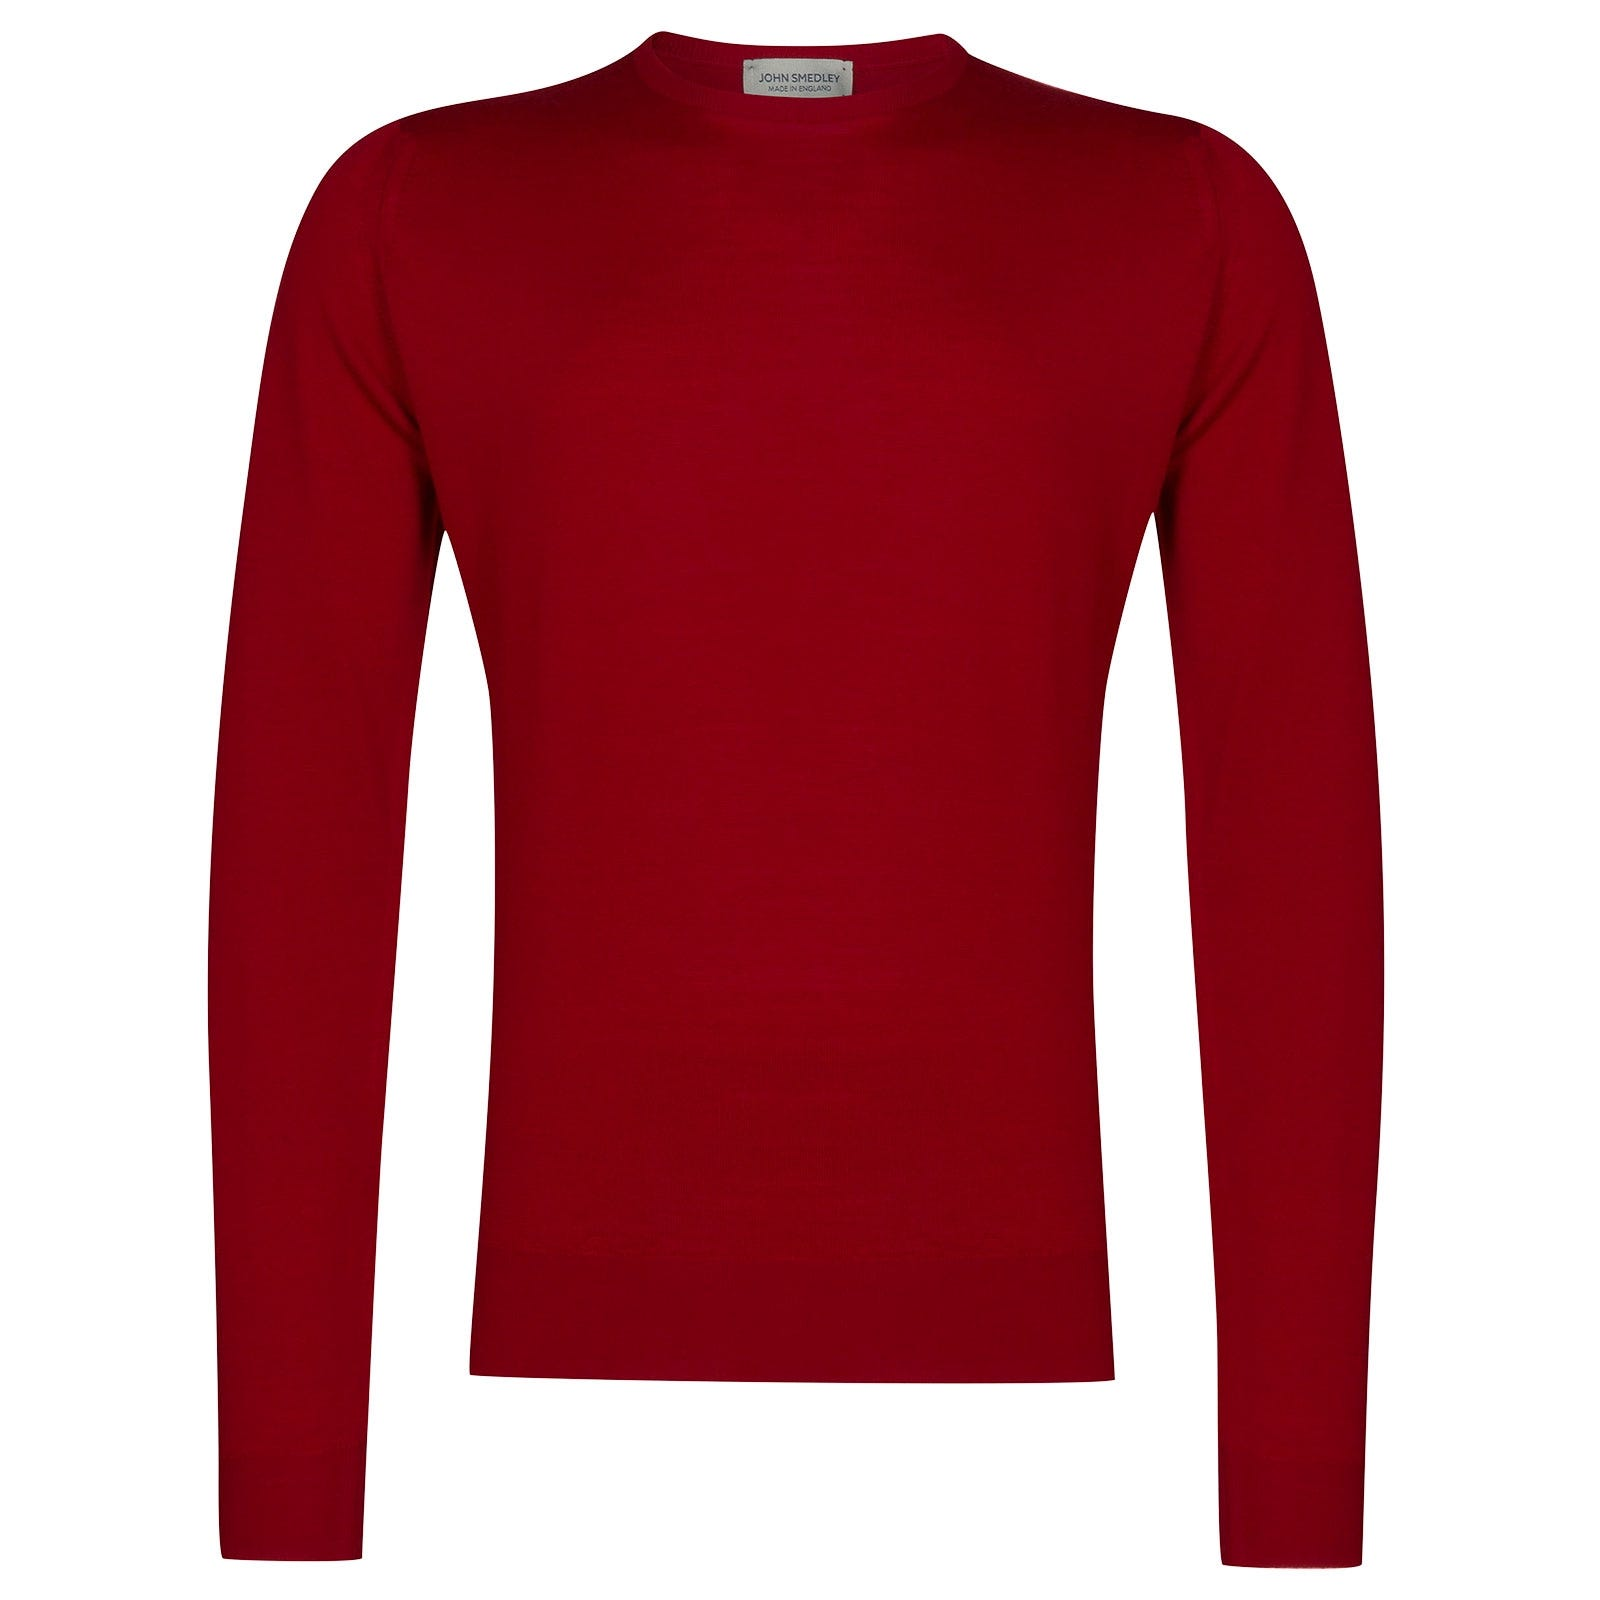 John Smedley Lundy Merino Wool Pullover in Dandy Red-XXL